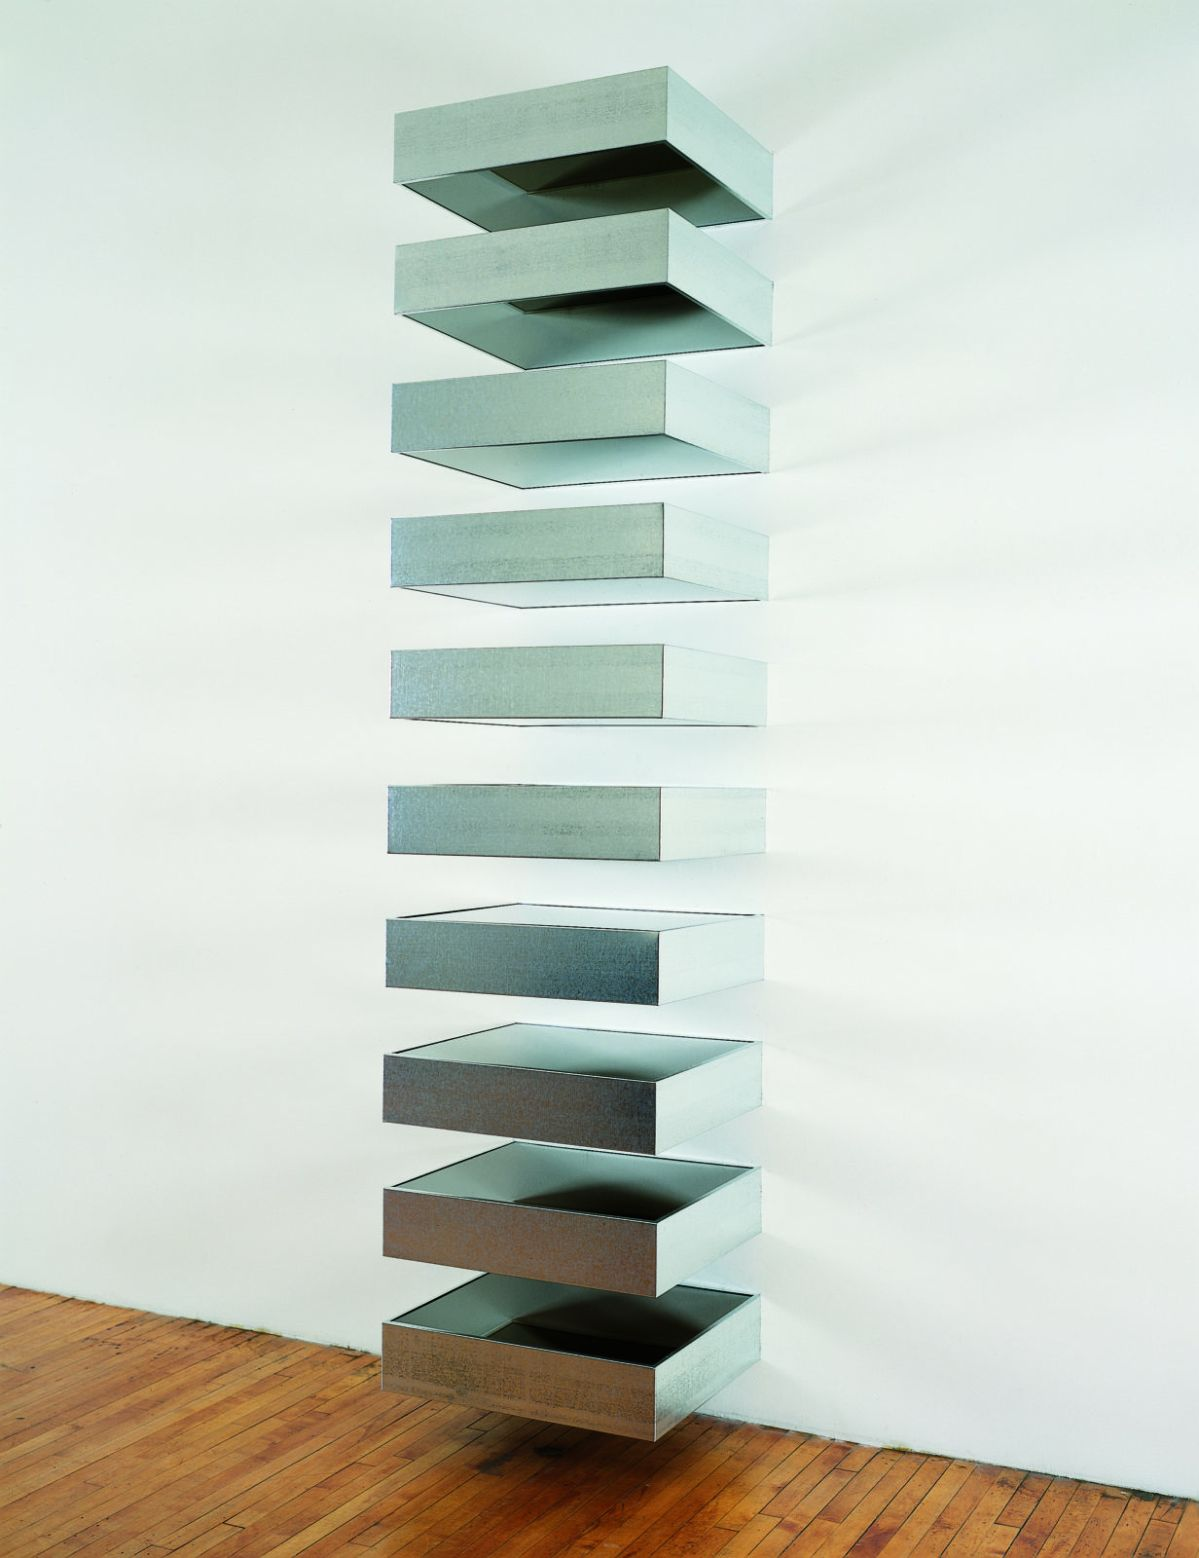 Donald Judd, Untitled, 1989